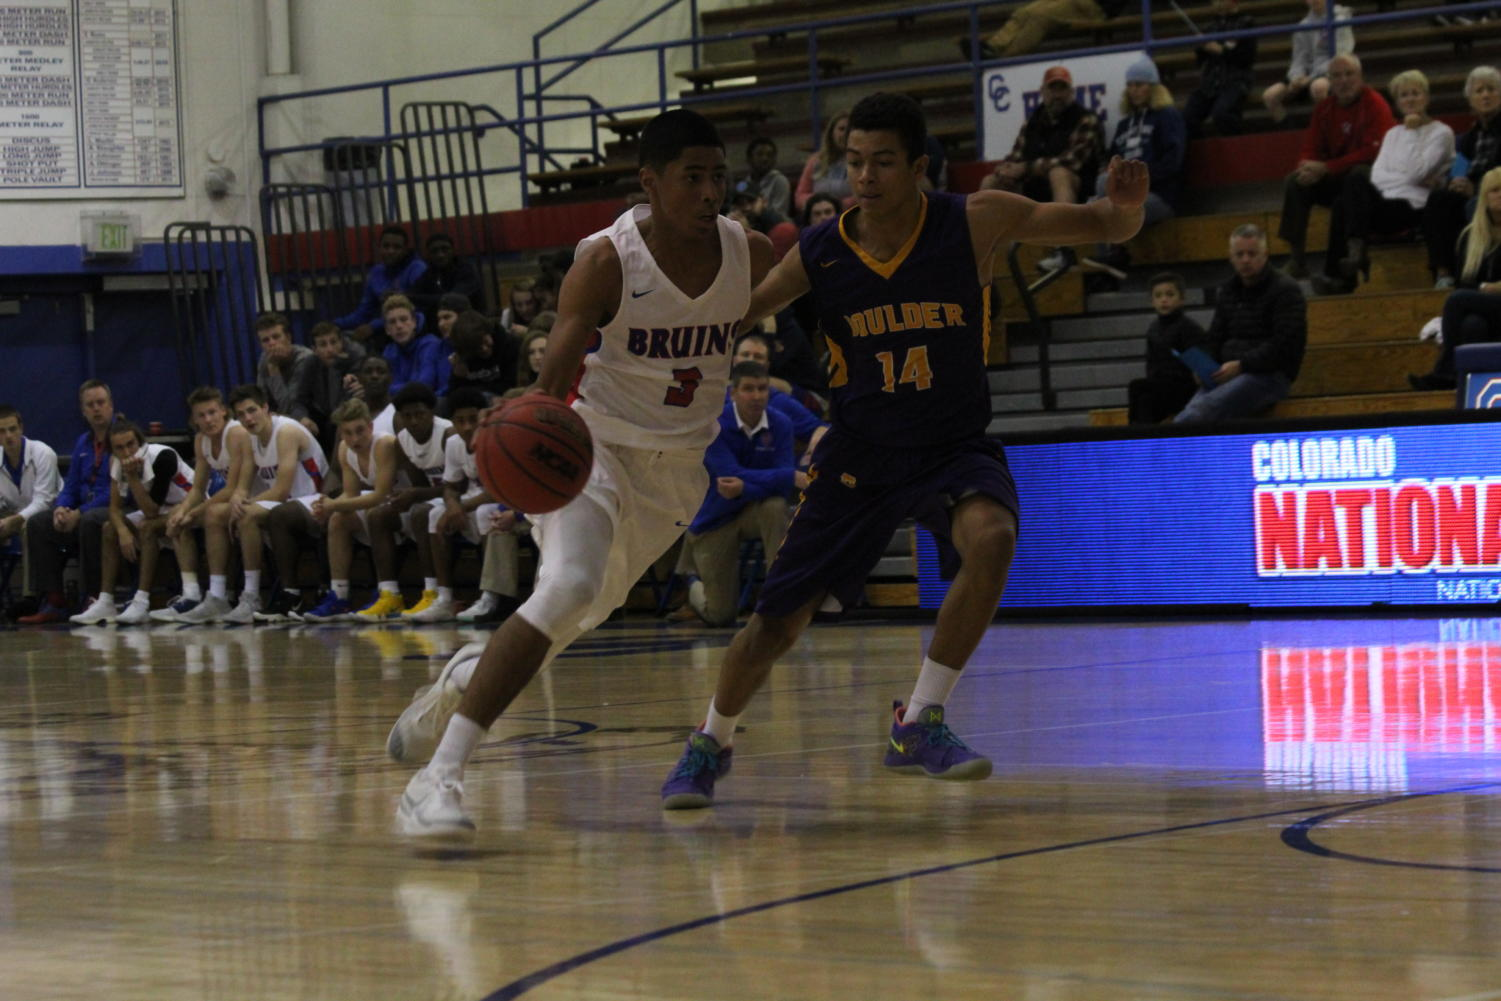 ON POINT: Sophomore point guard Julian Hammond drives to the basket during the first game of the season against Boulder on Dec. 4. Creek won 73-49. Hammond, although he's a sophomore, is a key player and starter for the team.